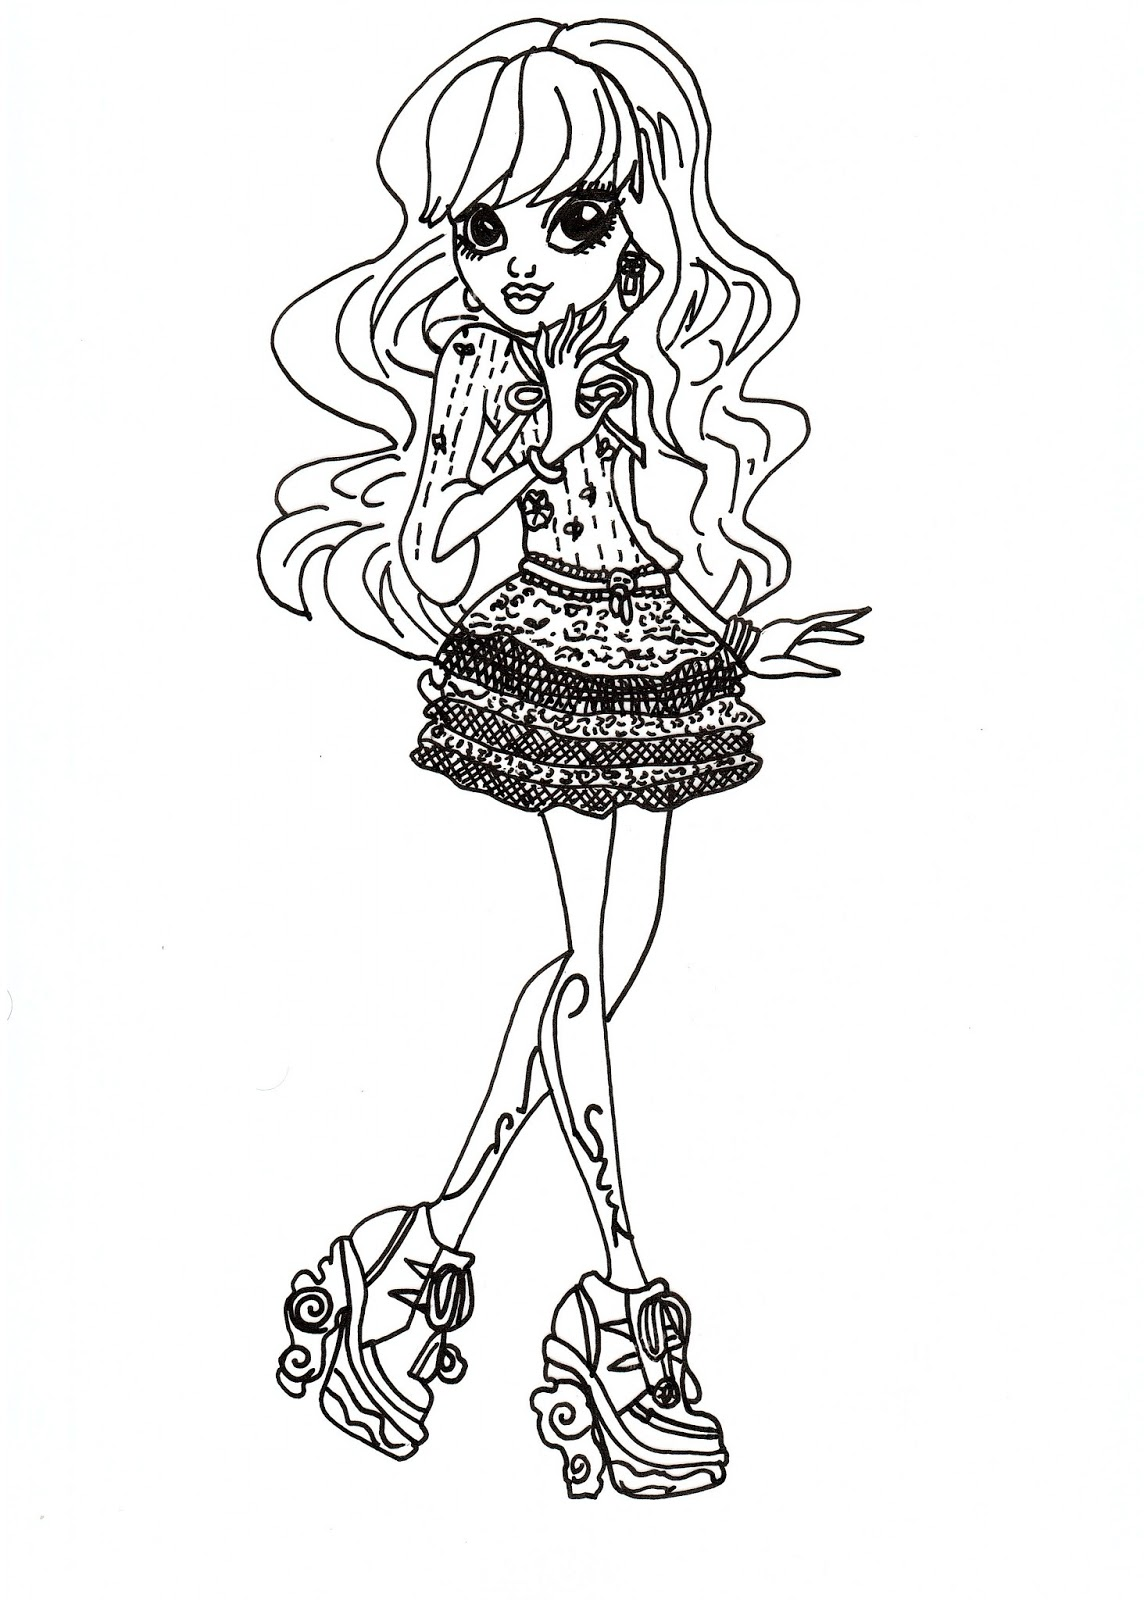 coloring pages : Free Printable Coloring Book For Kids Art Monster High  Coloring 2 Tags Marvelous Monster High Free Printable Coloring Book for  Kids ~ affiliateprogrambook.com | 1600x1144